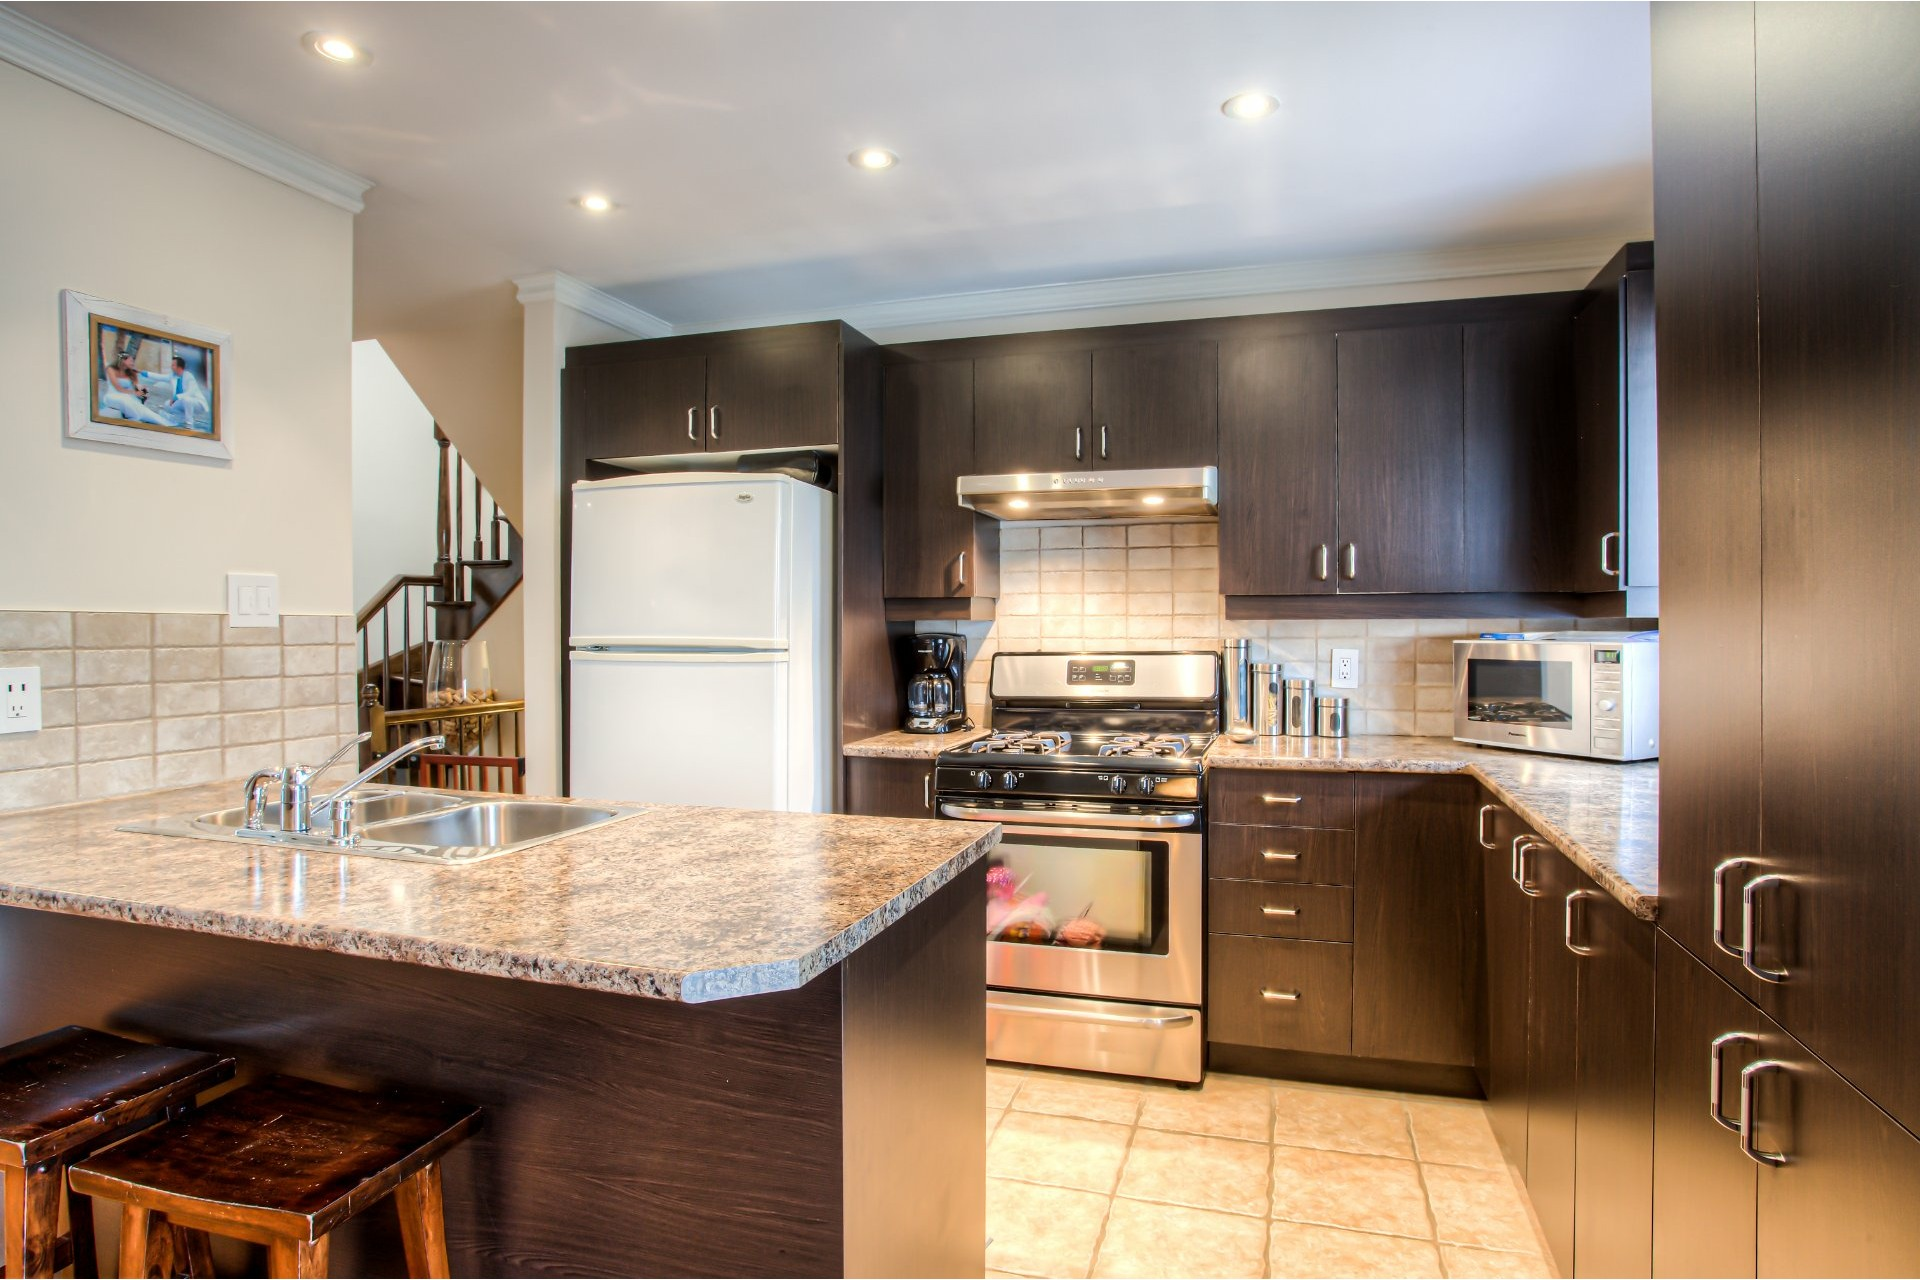 image 11 - House For sale Vaudreuil-Dorion - 9 rooms